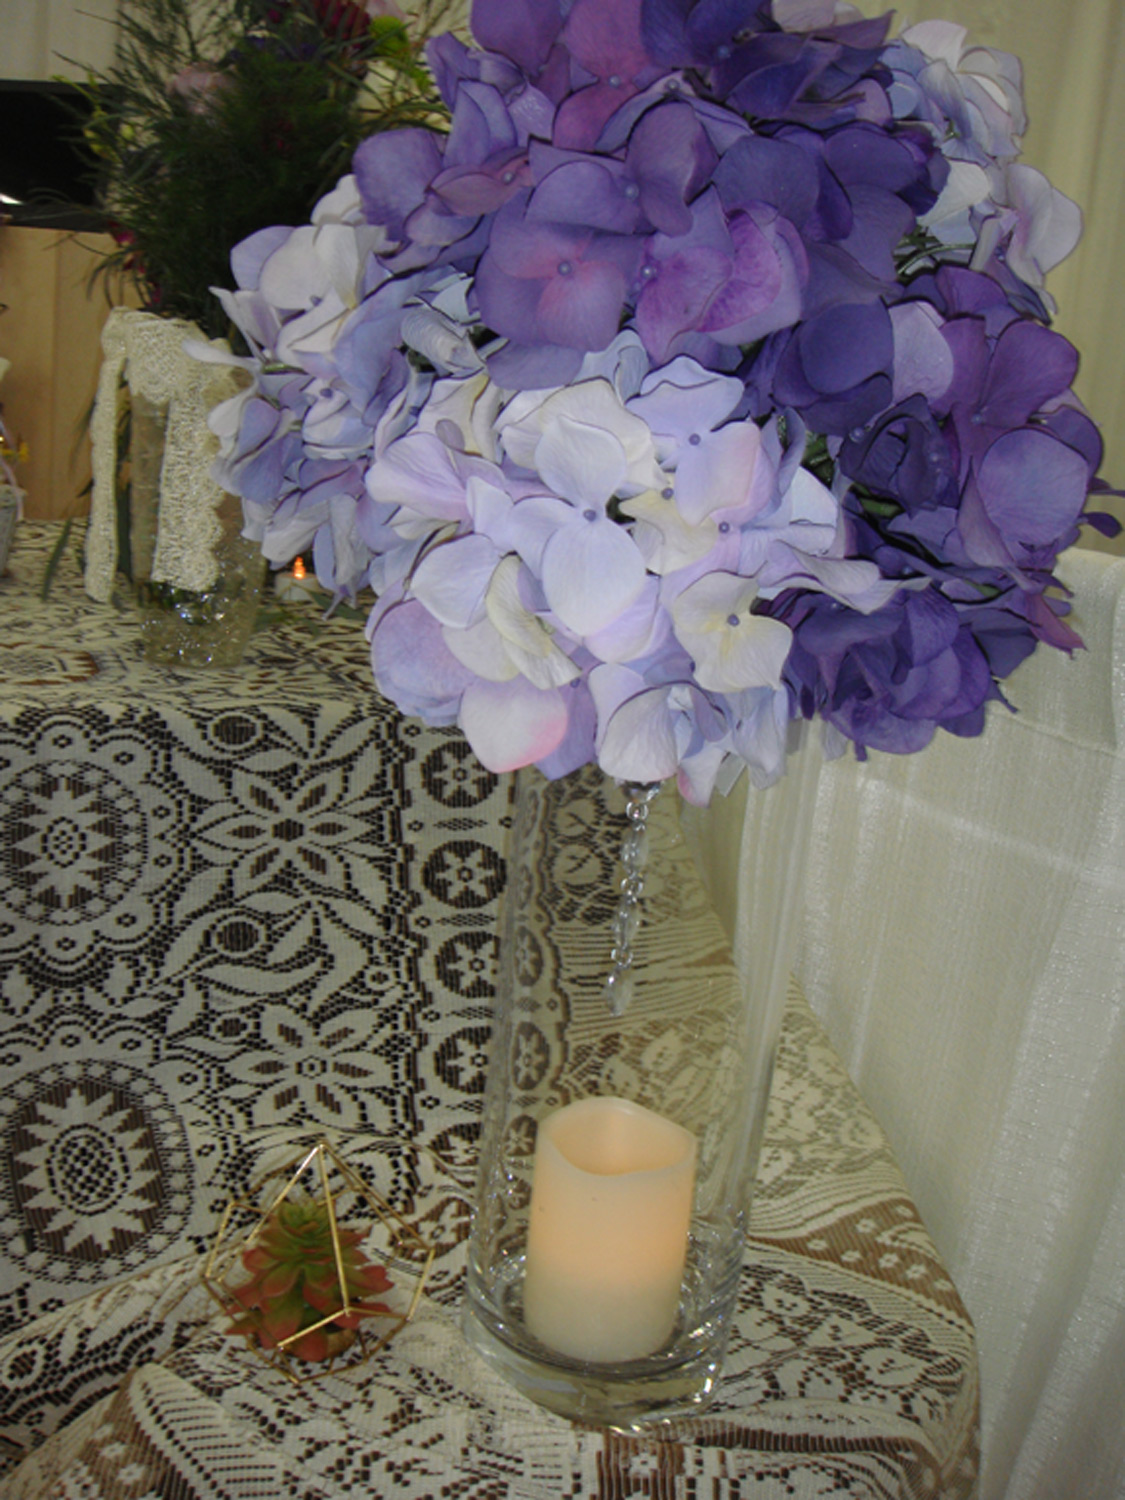 pomander on tall vase with crystals and candle for event decor - silk flowers